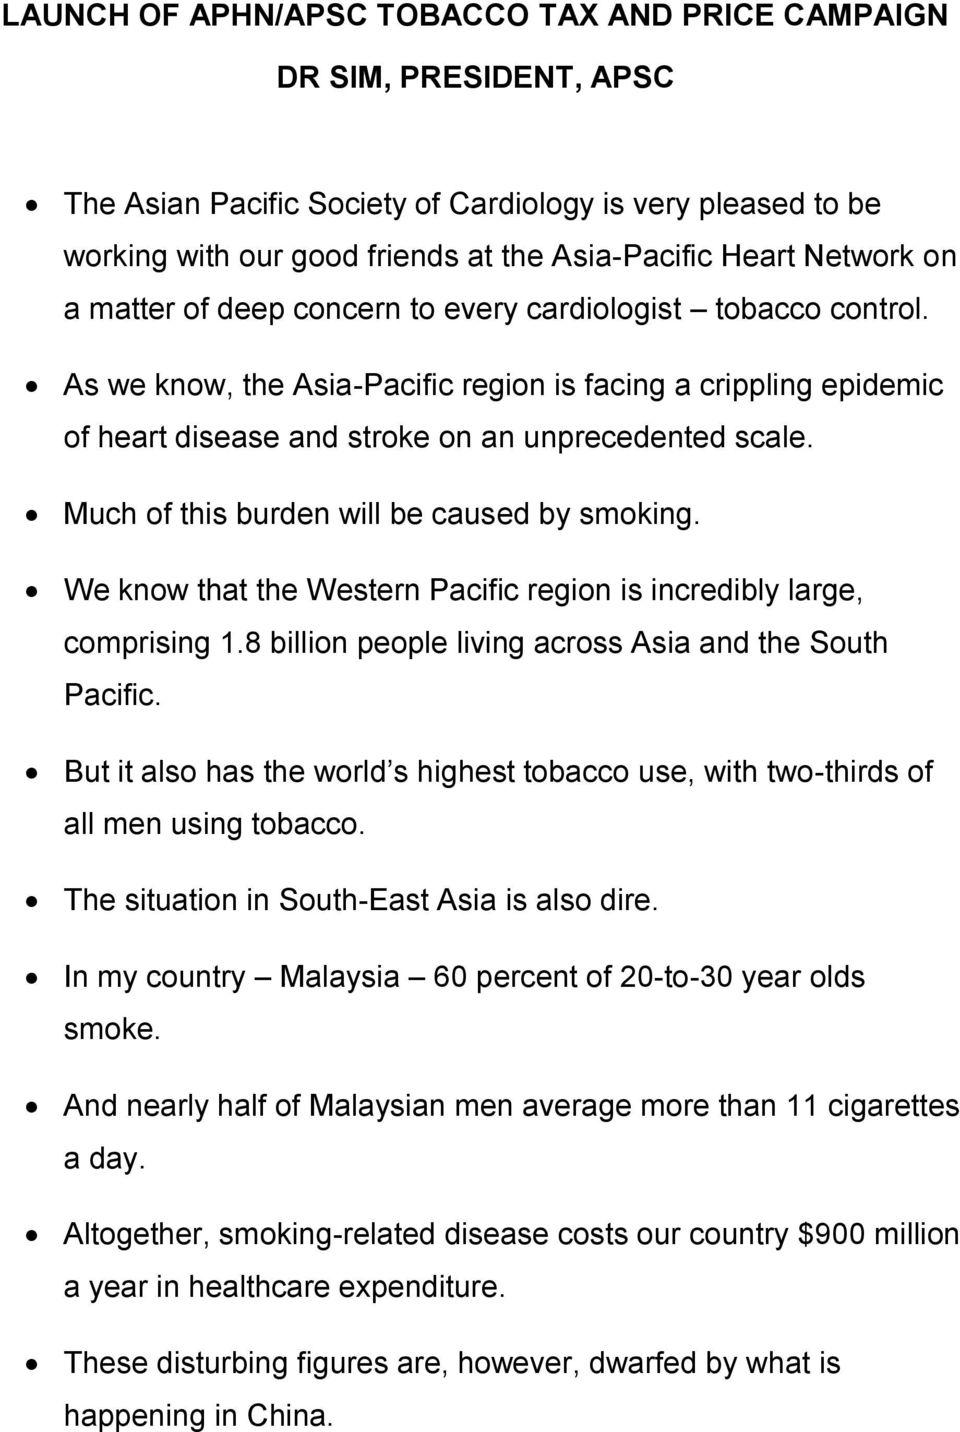 Much of this burden will be caused by smoking. We know that the Western Pacific region is incredibly large, comprising 1.8 billion people living across Asia and the South Pacific.